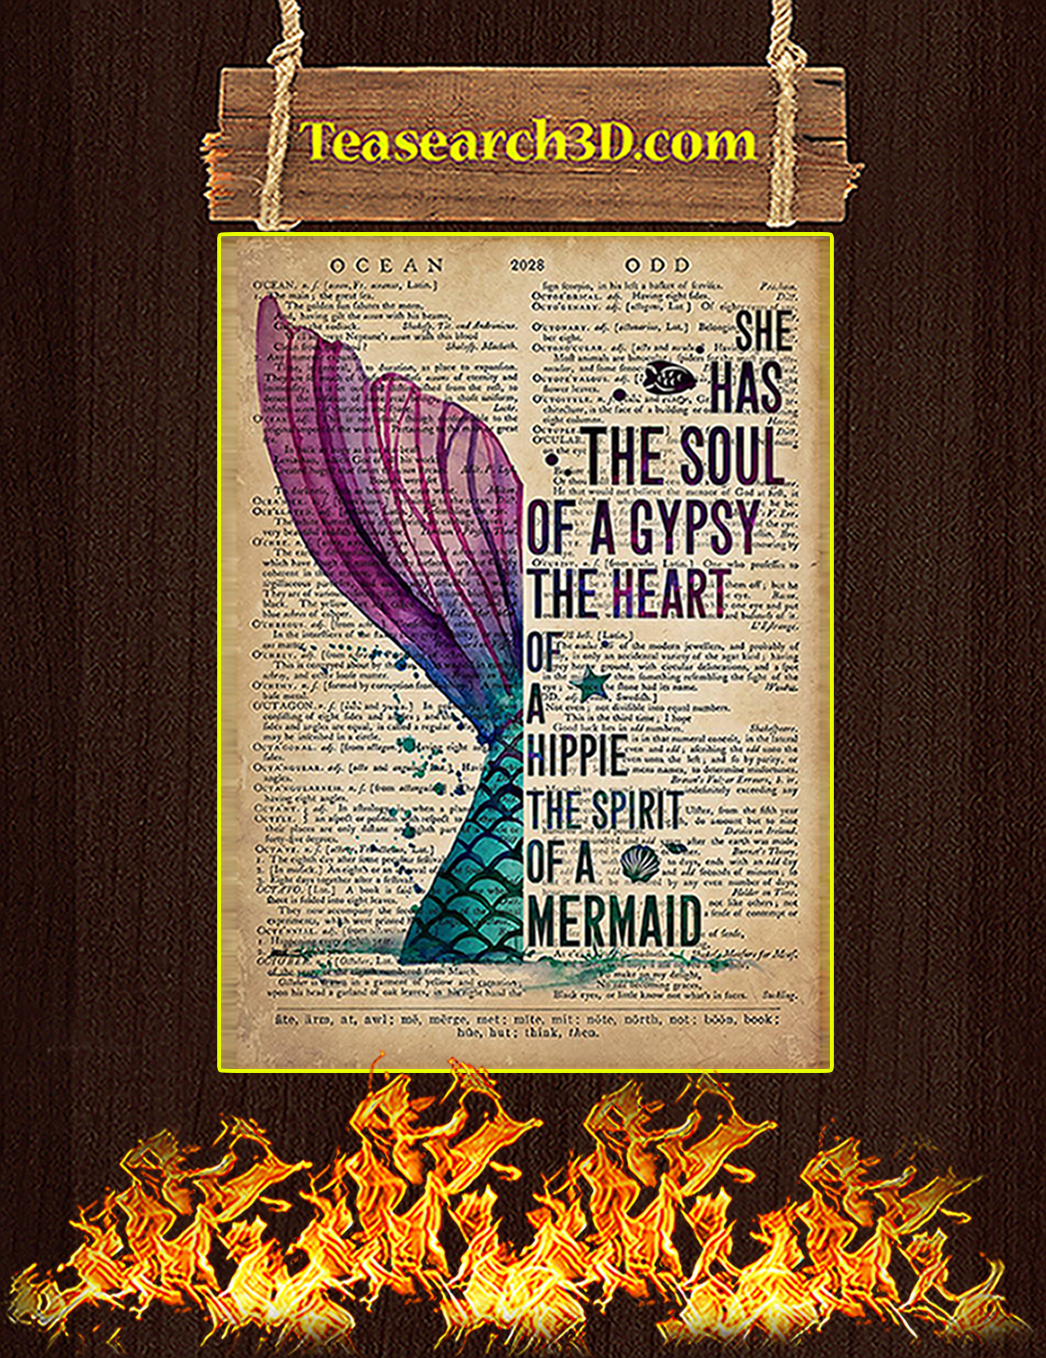 Mermaid She has the soul of a gypsy poster A1